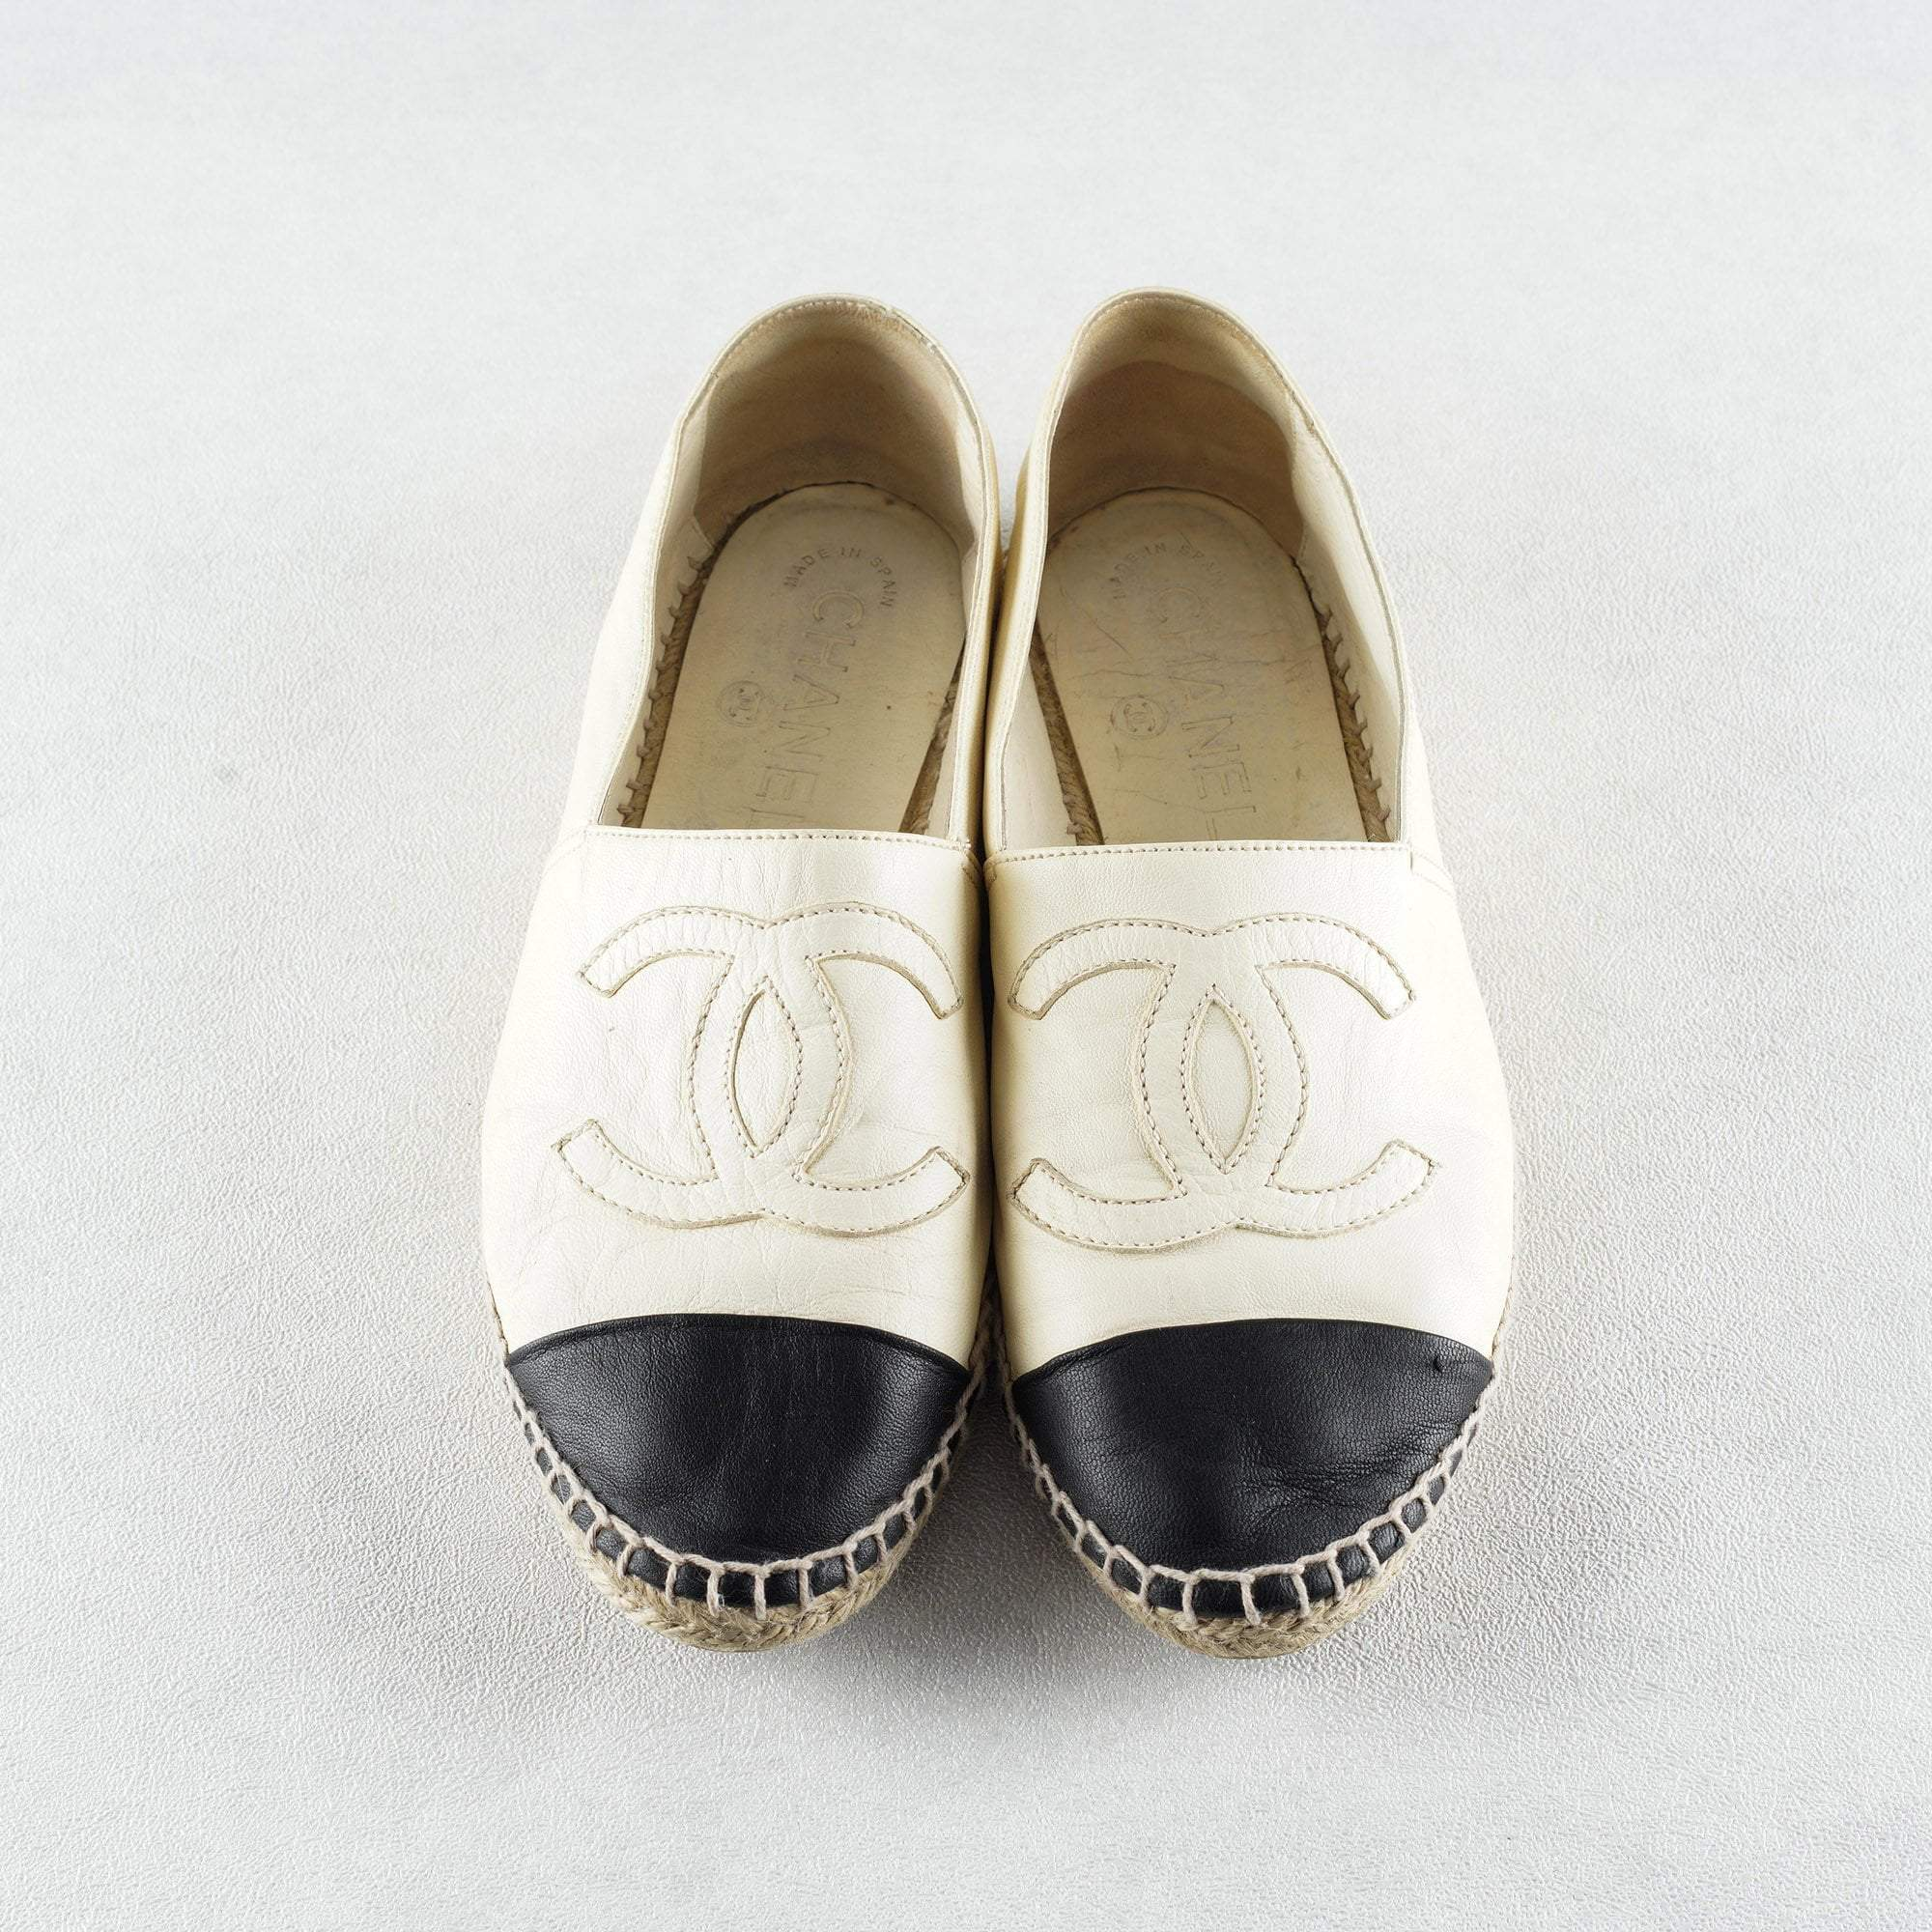 Chanel Leather CC Espadrilles 39